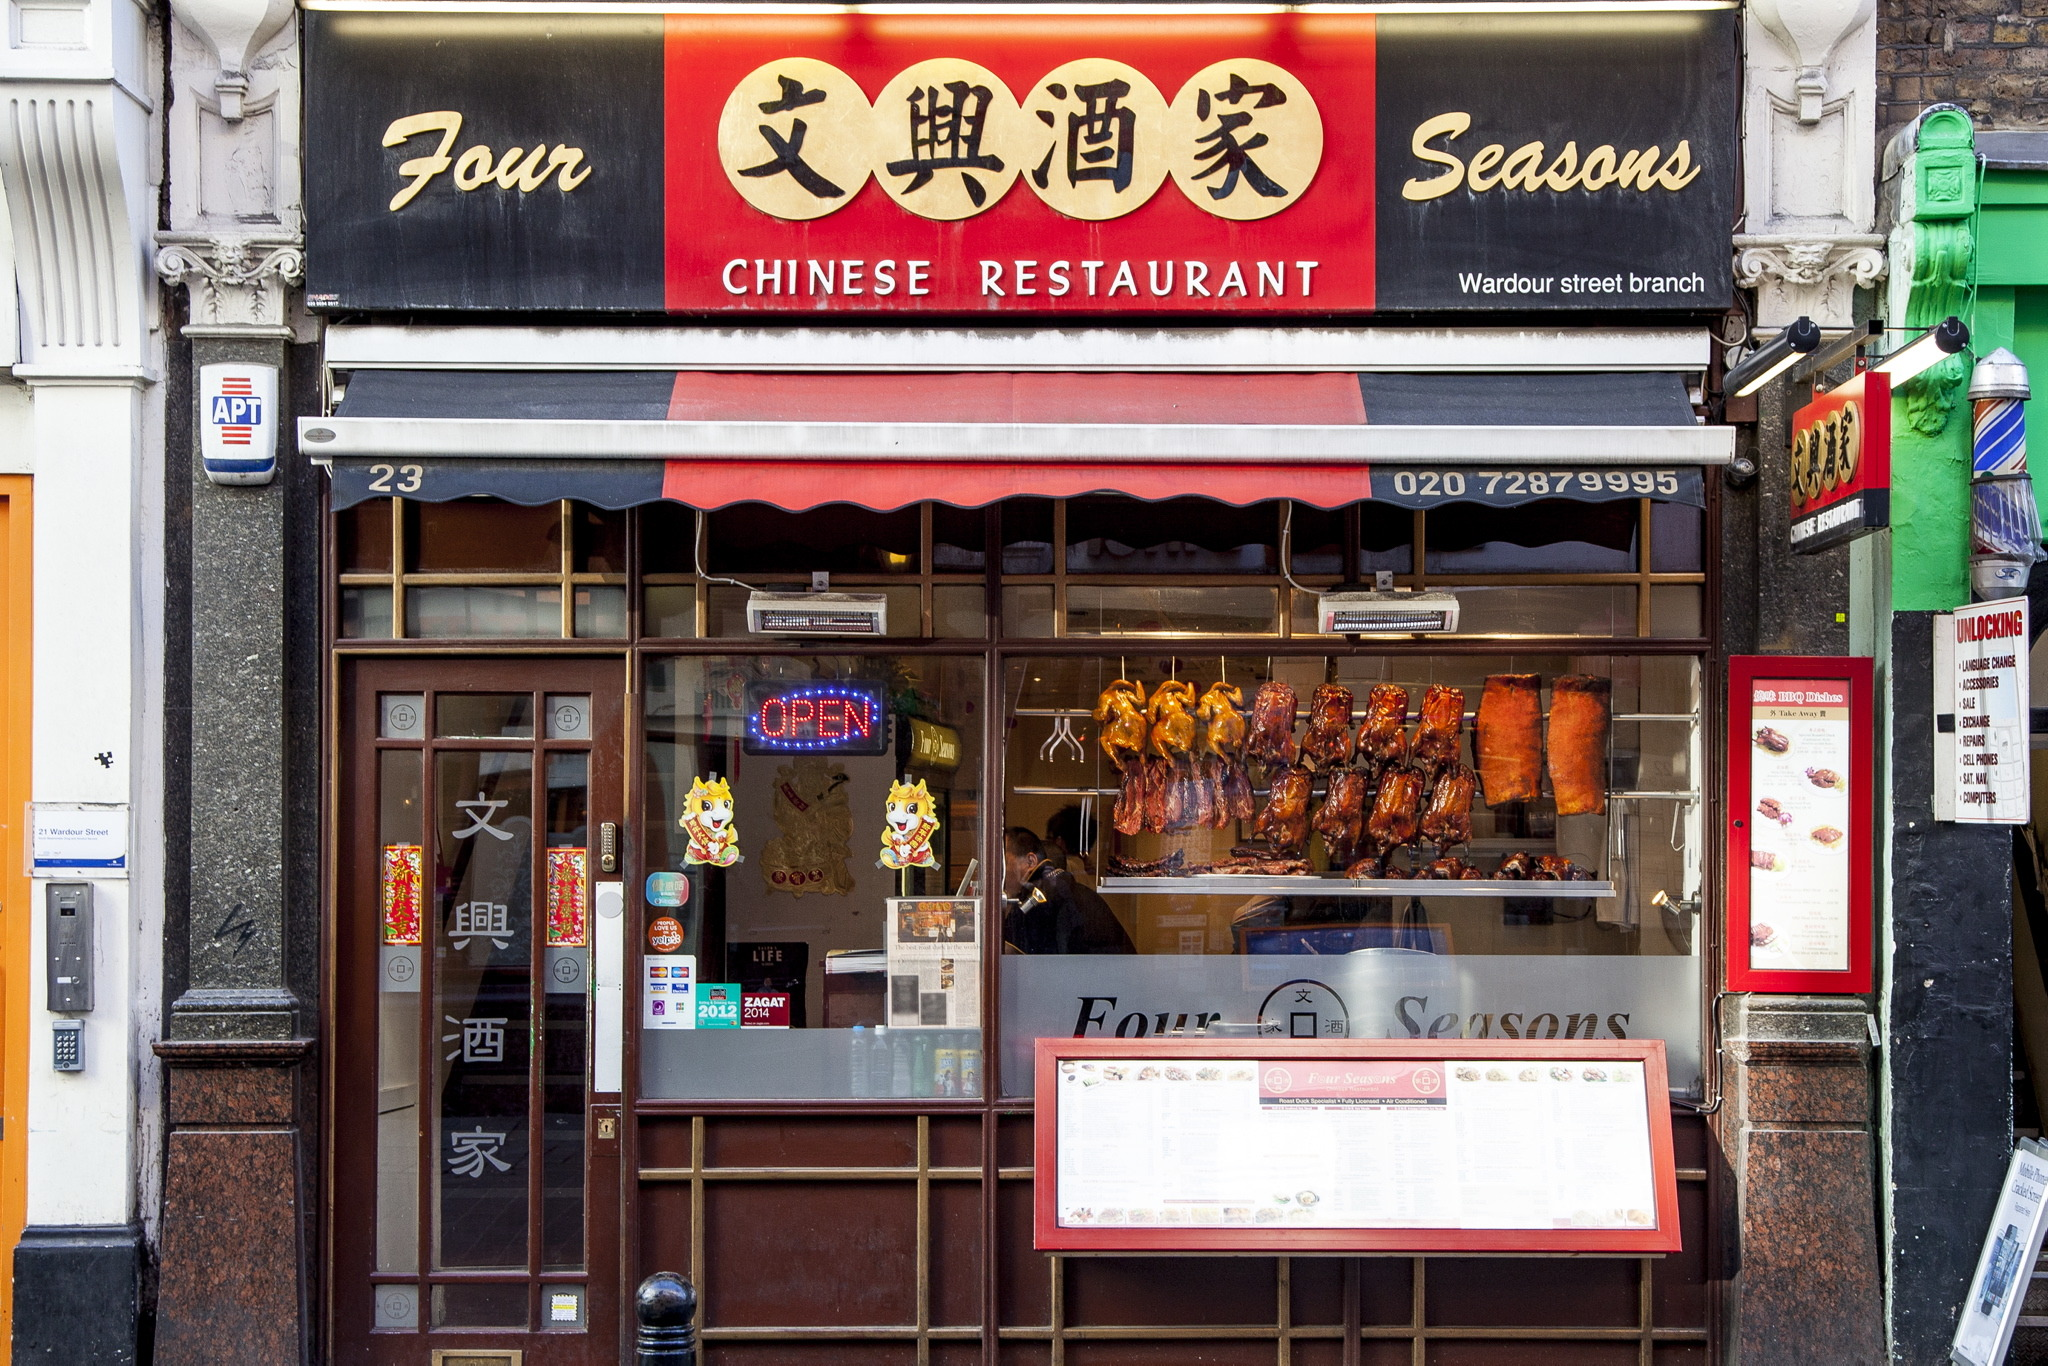 Four Seasons | Restaurants in Chinatown, London